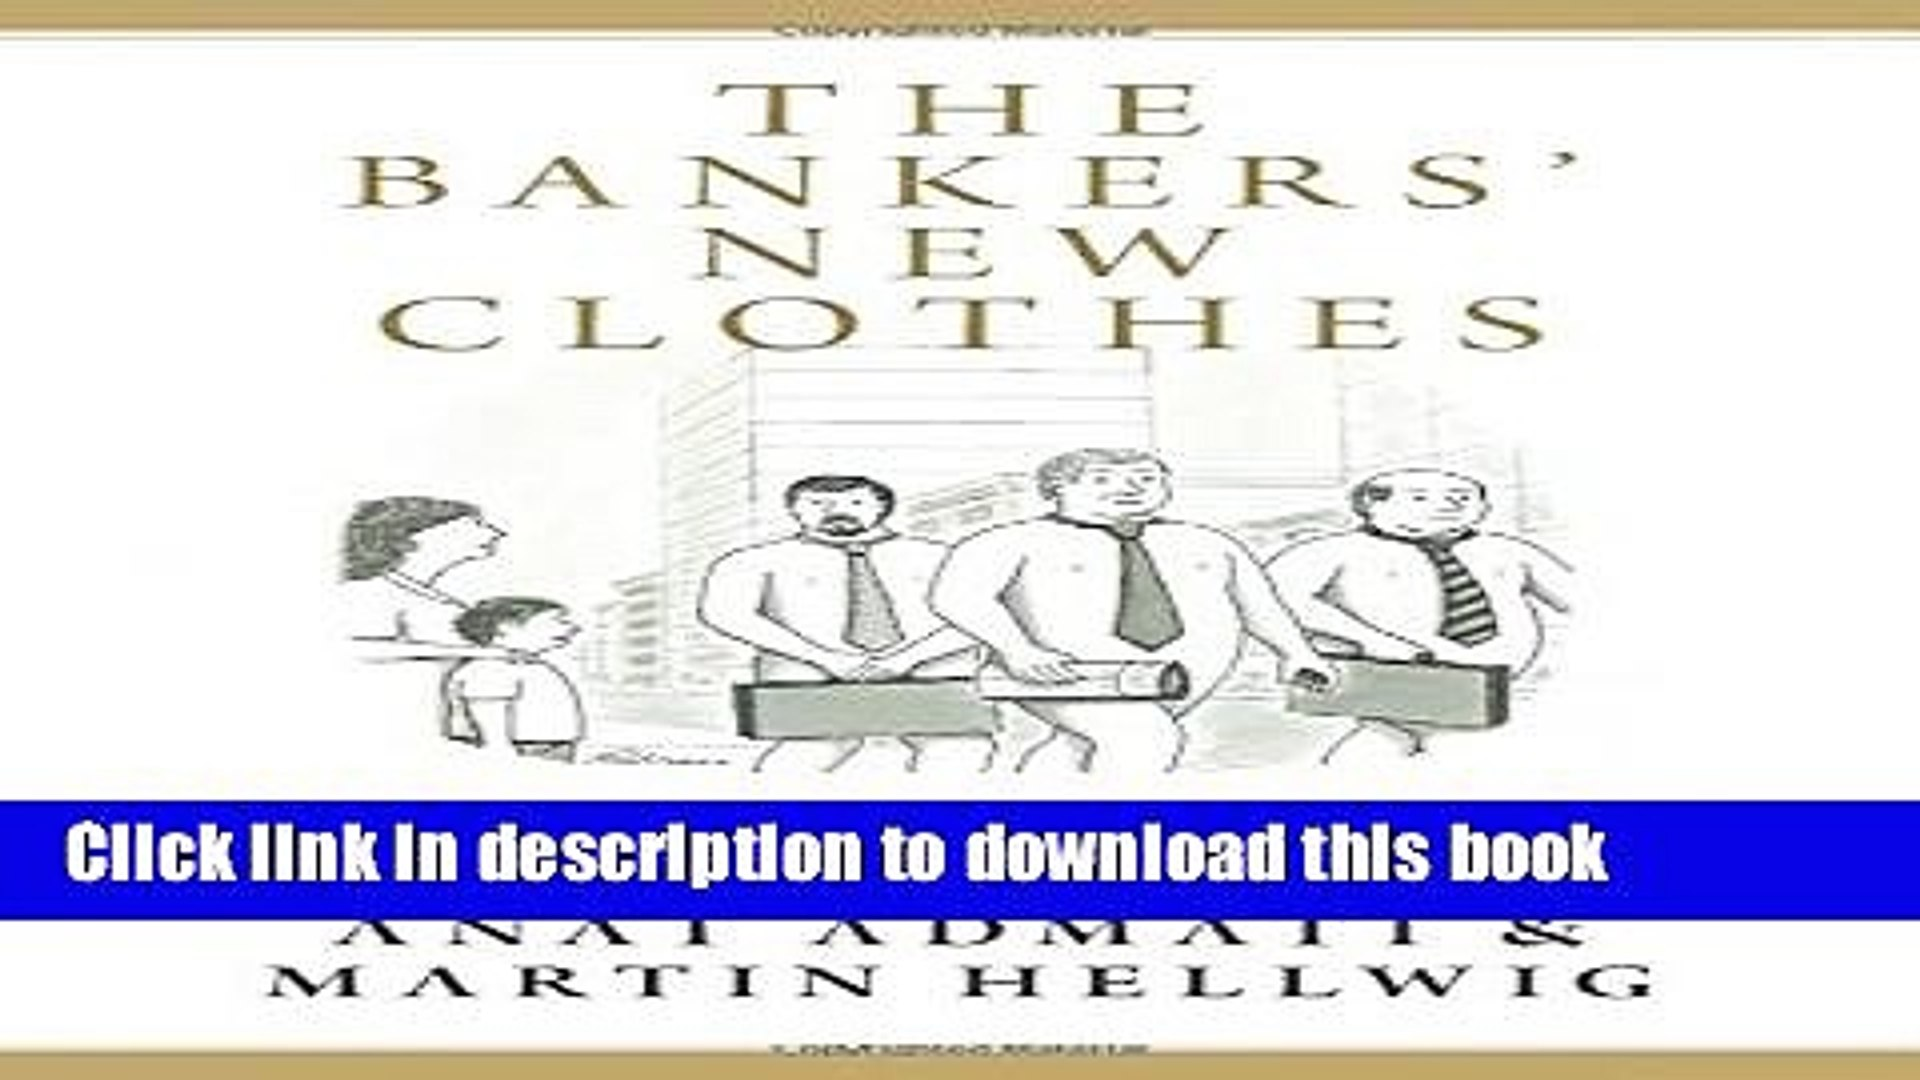 [Popular] The Bankers  New Clothes: What s Wrong with Banking and What to Do about It Kindle Online